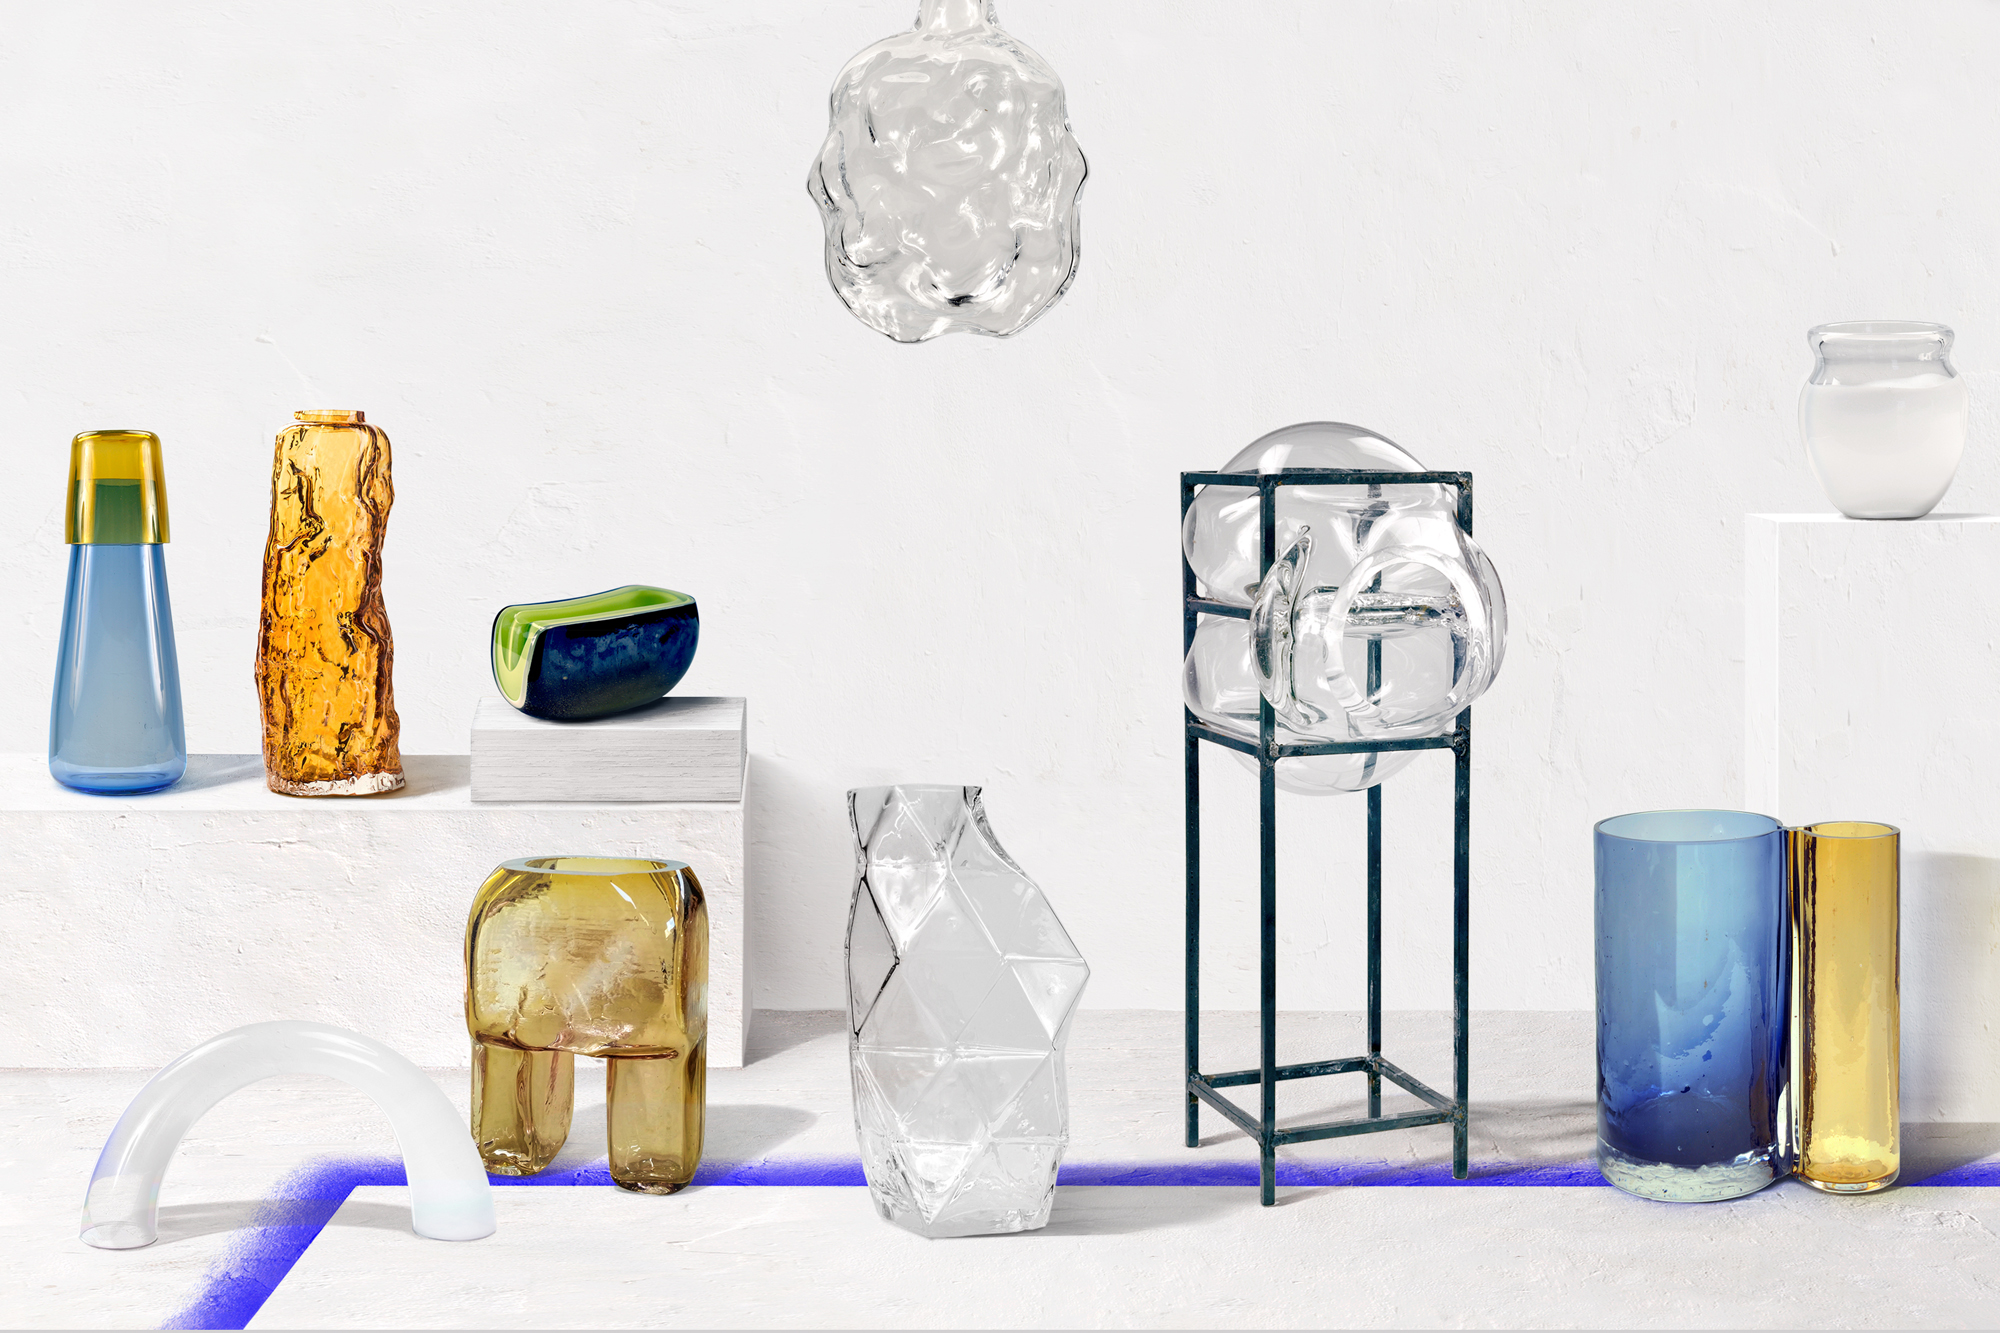 The Glass Cares collection from Off Portugal